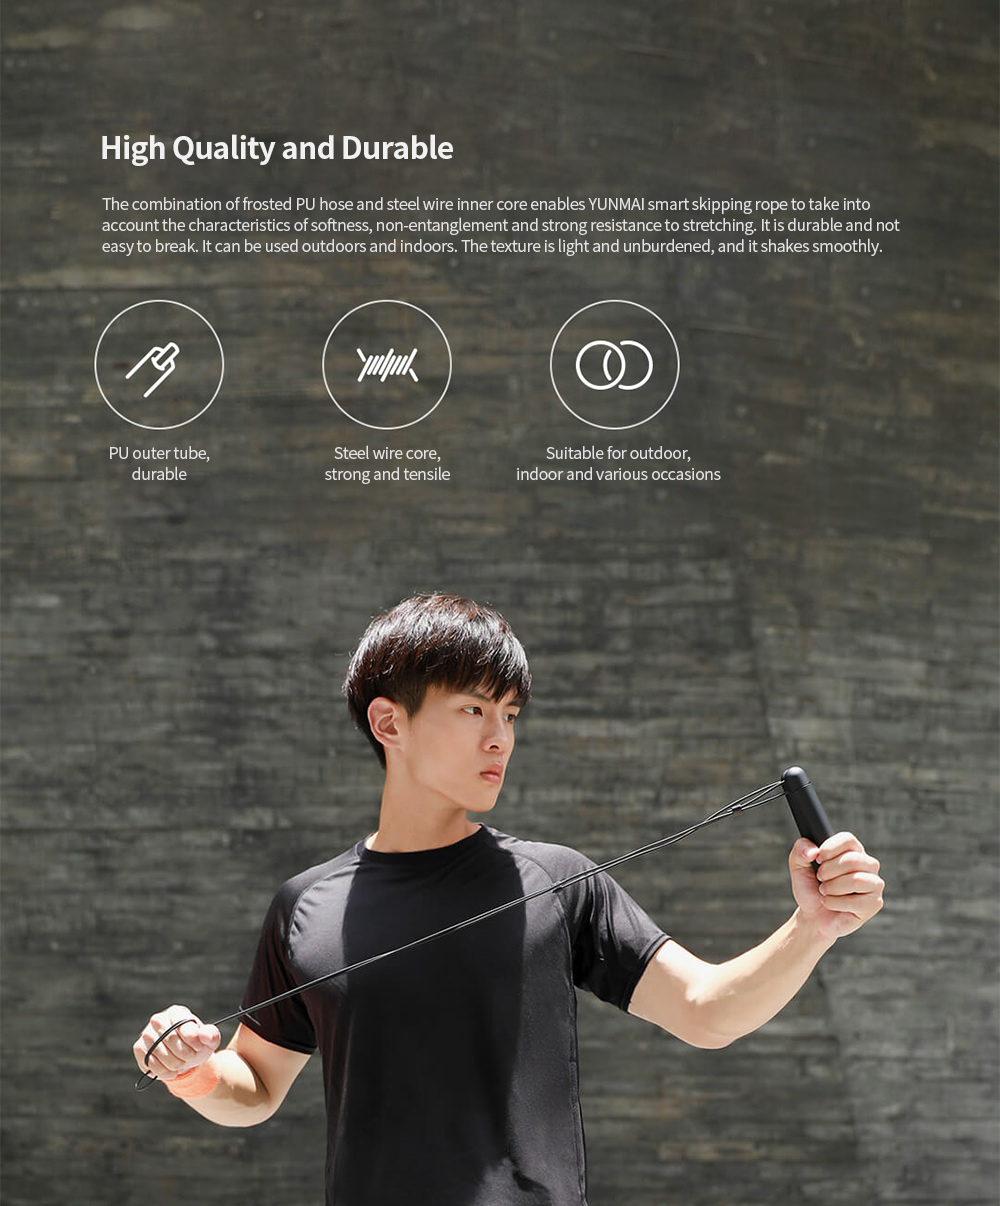 Smart Training Skipping Rope from Youpin - Black High Quality and Durable